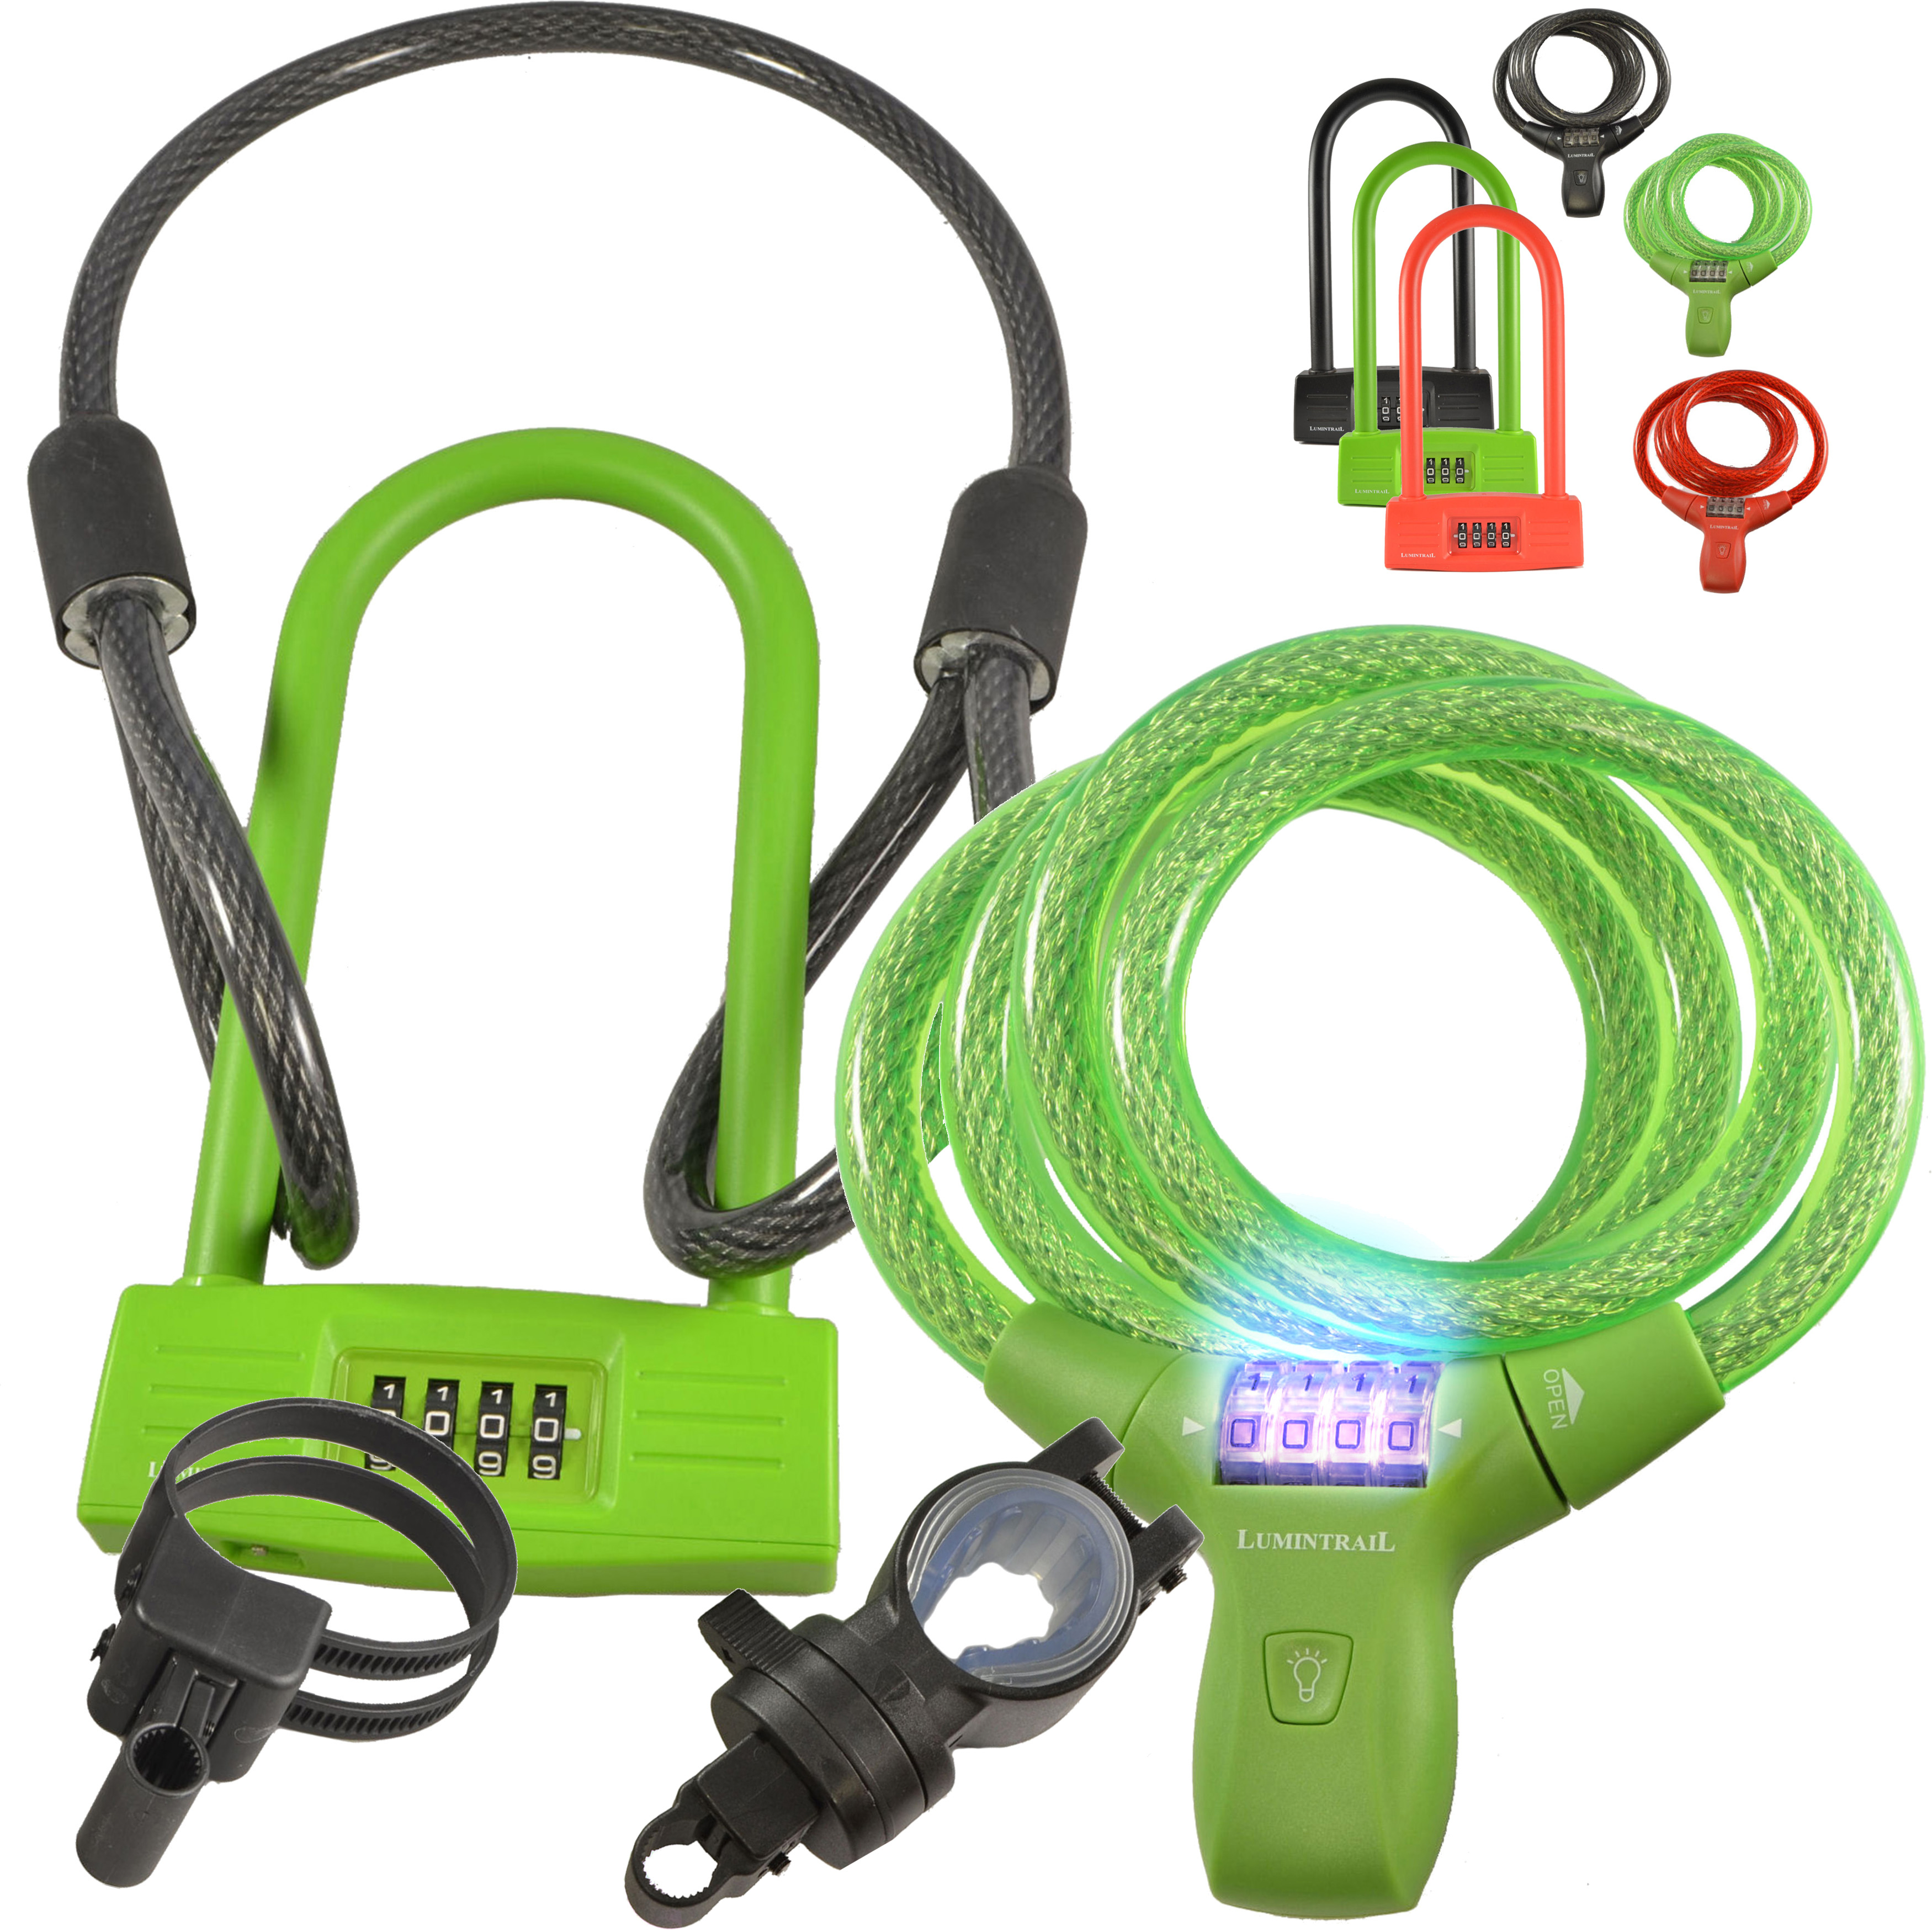 Lumintrail Bike Combination Cable Lock & U-Lock Combo GREEN